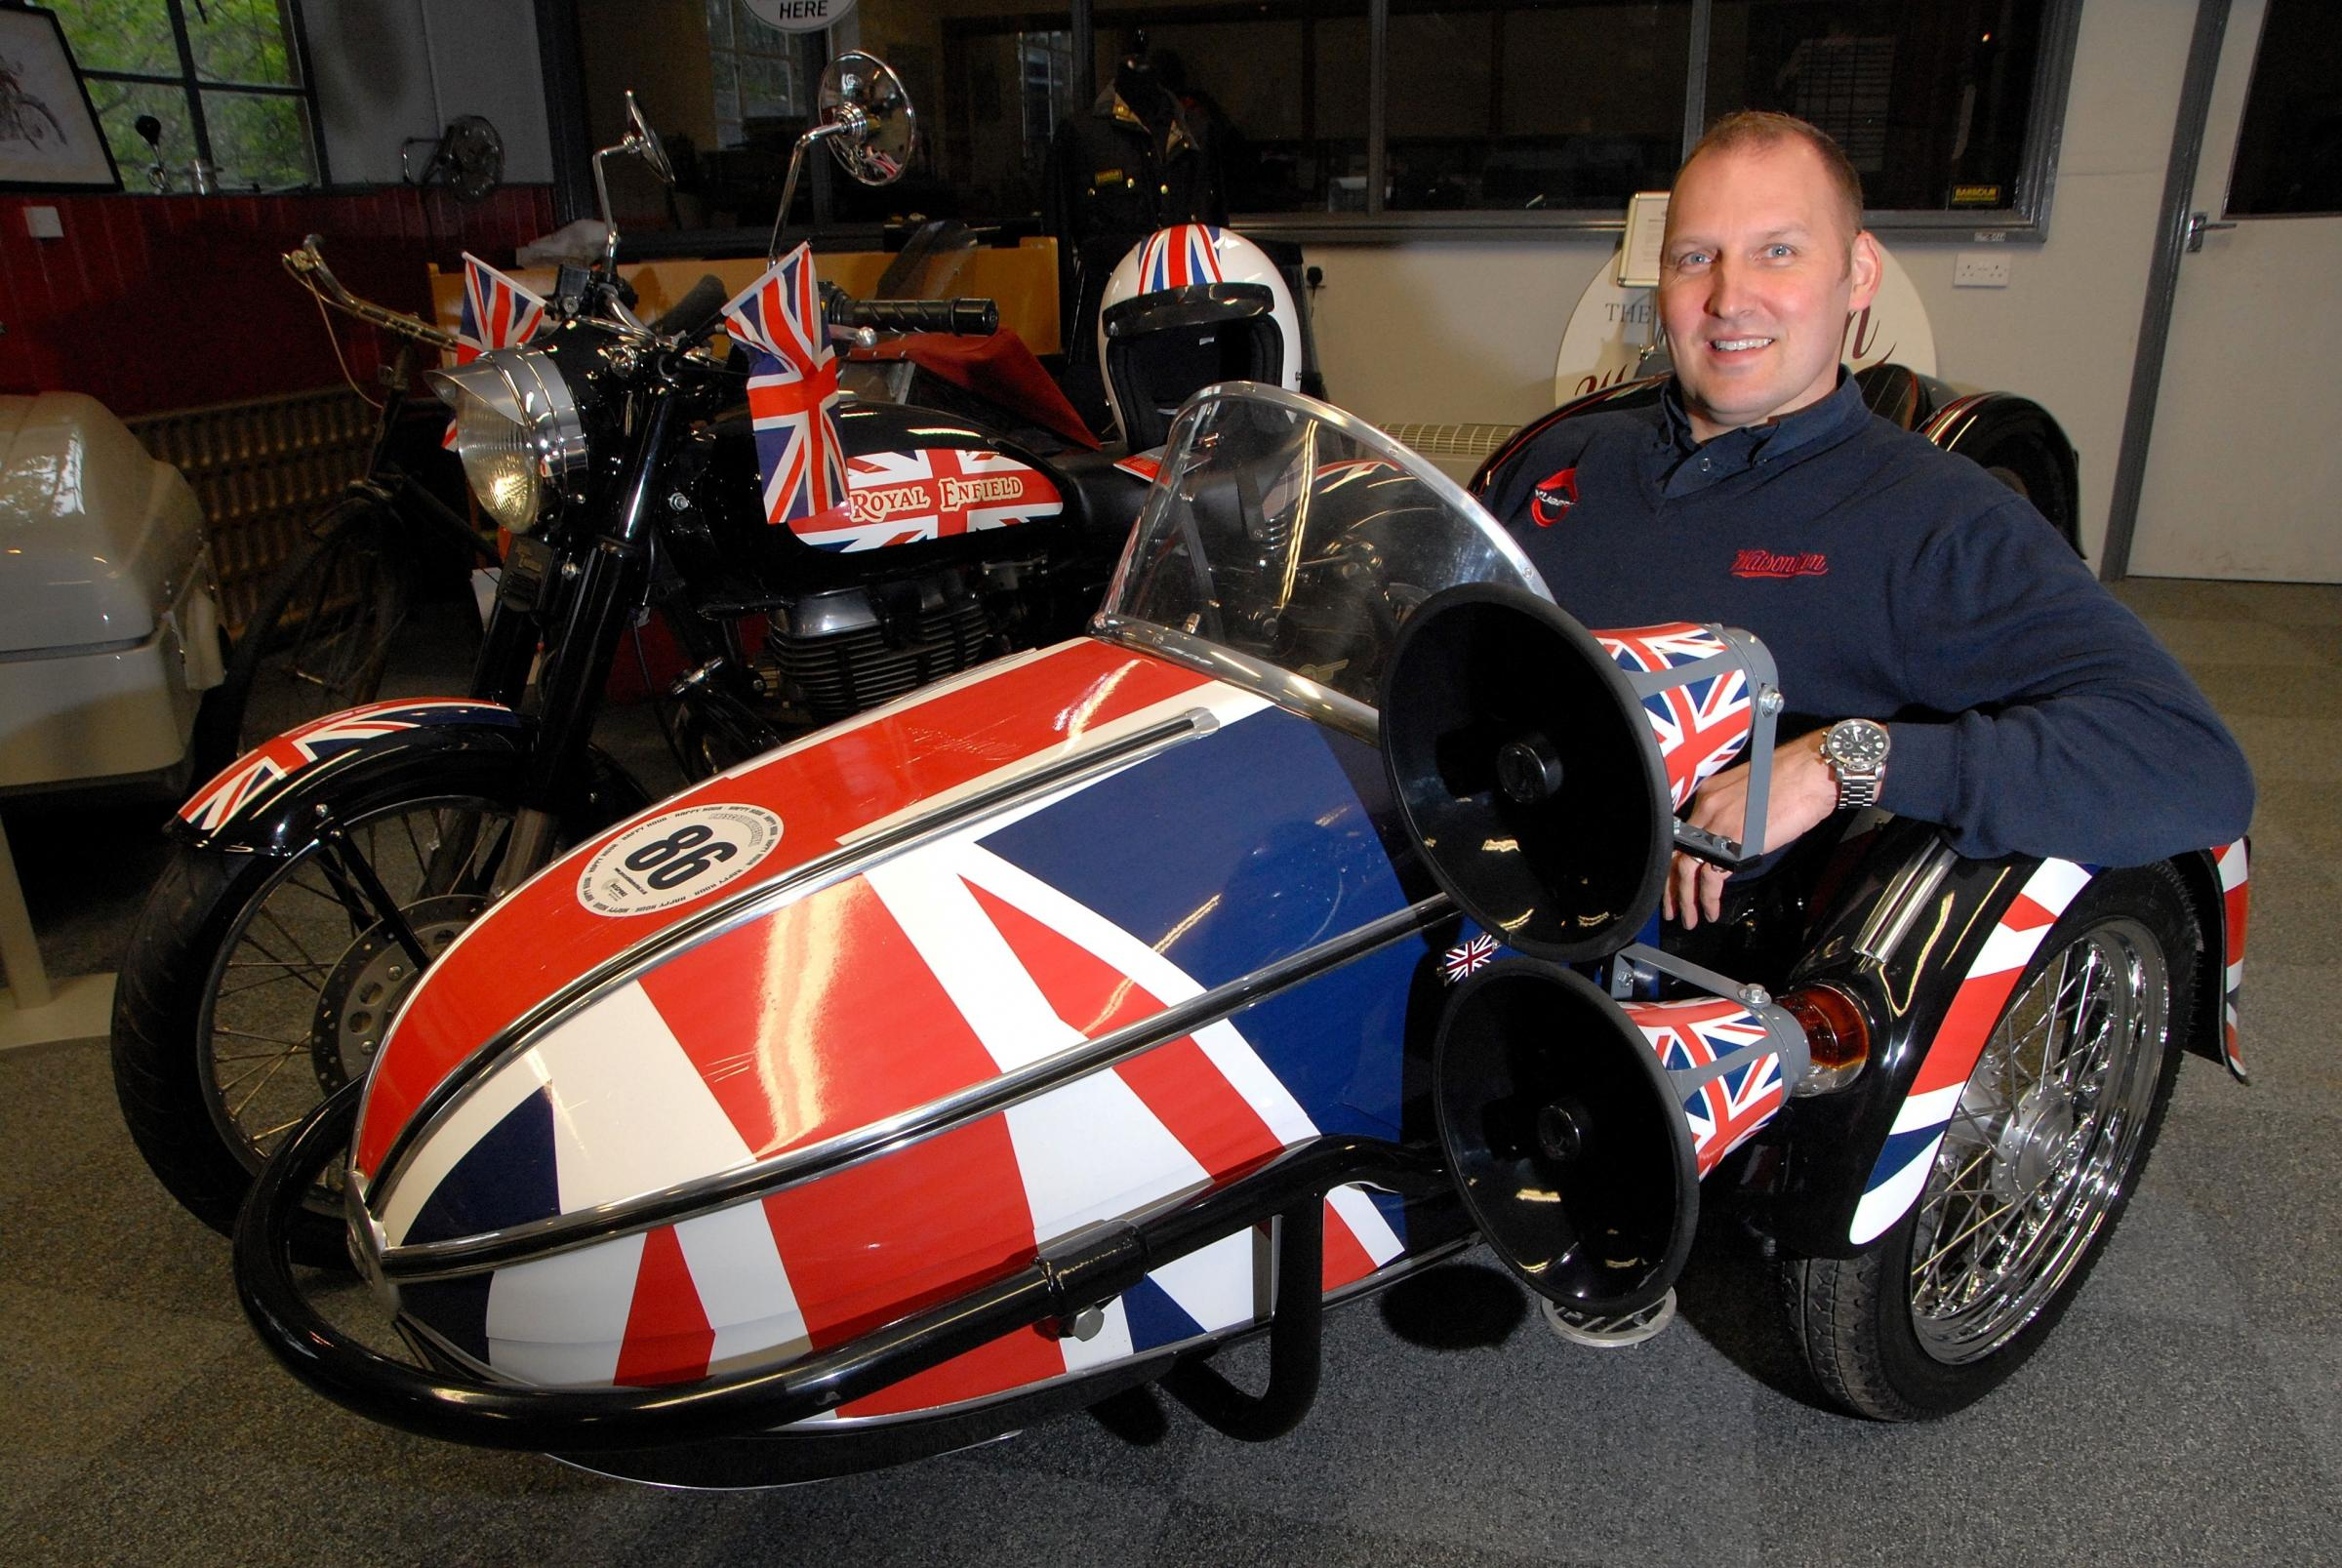 1714579601 Paul Jackson 22.04.14 Blockley Ben Matthews, director Watsonian Squire, whose sidecar featured on Britain's Got Talent. (5591883)